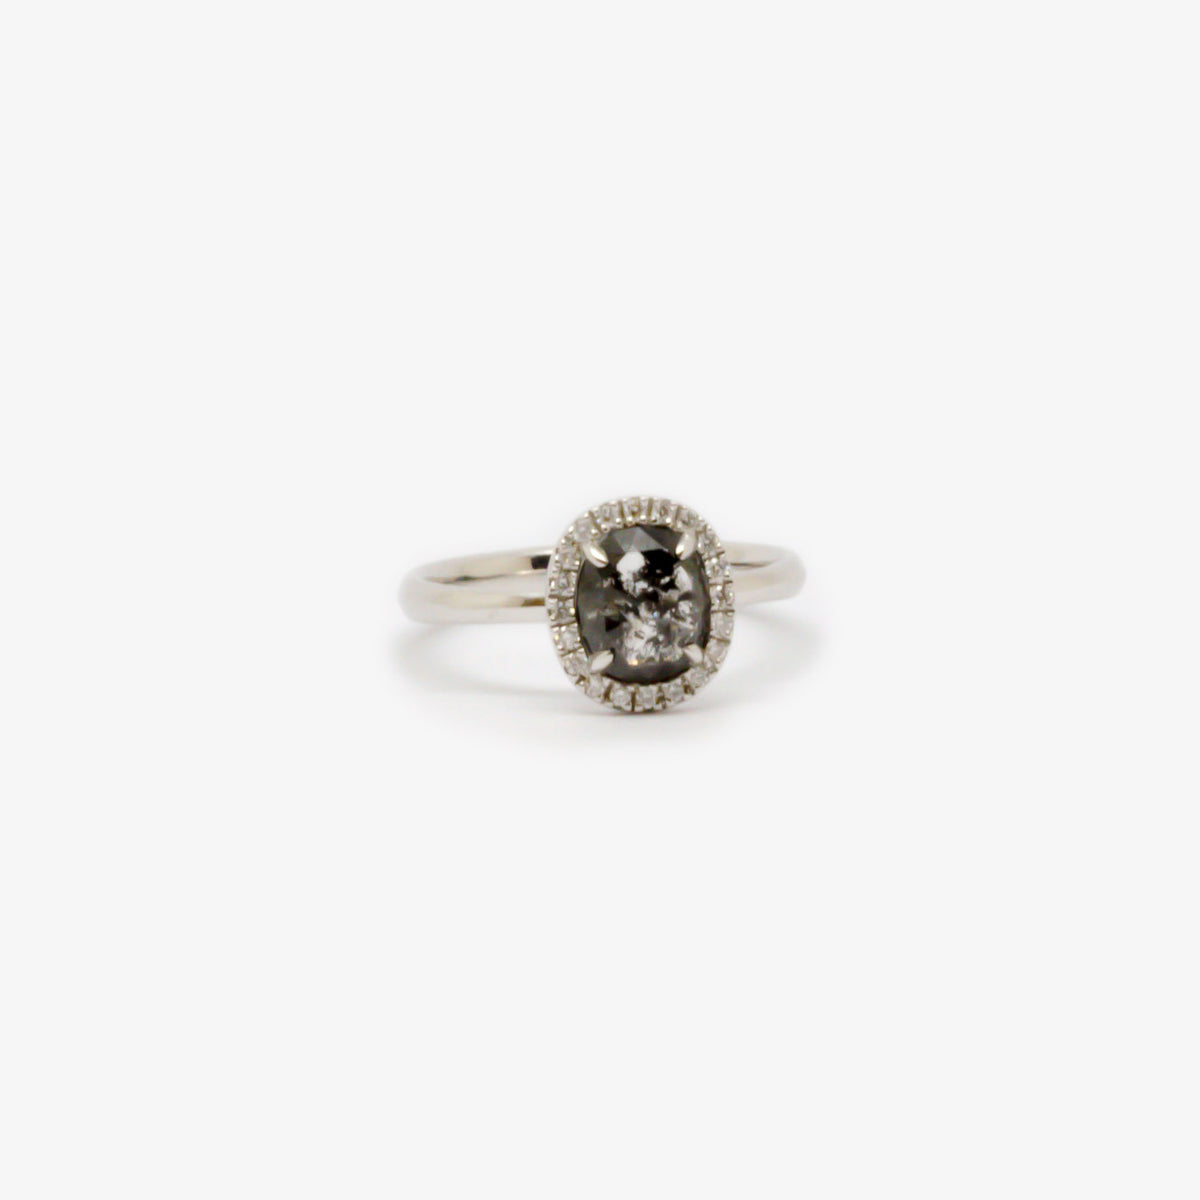 Cushion Cut Rough Diamond Ring